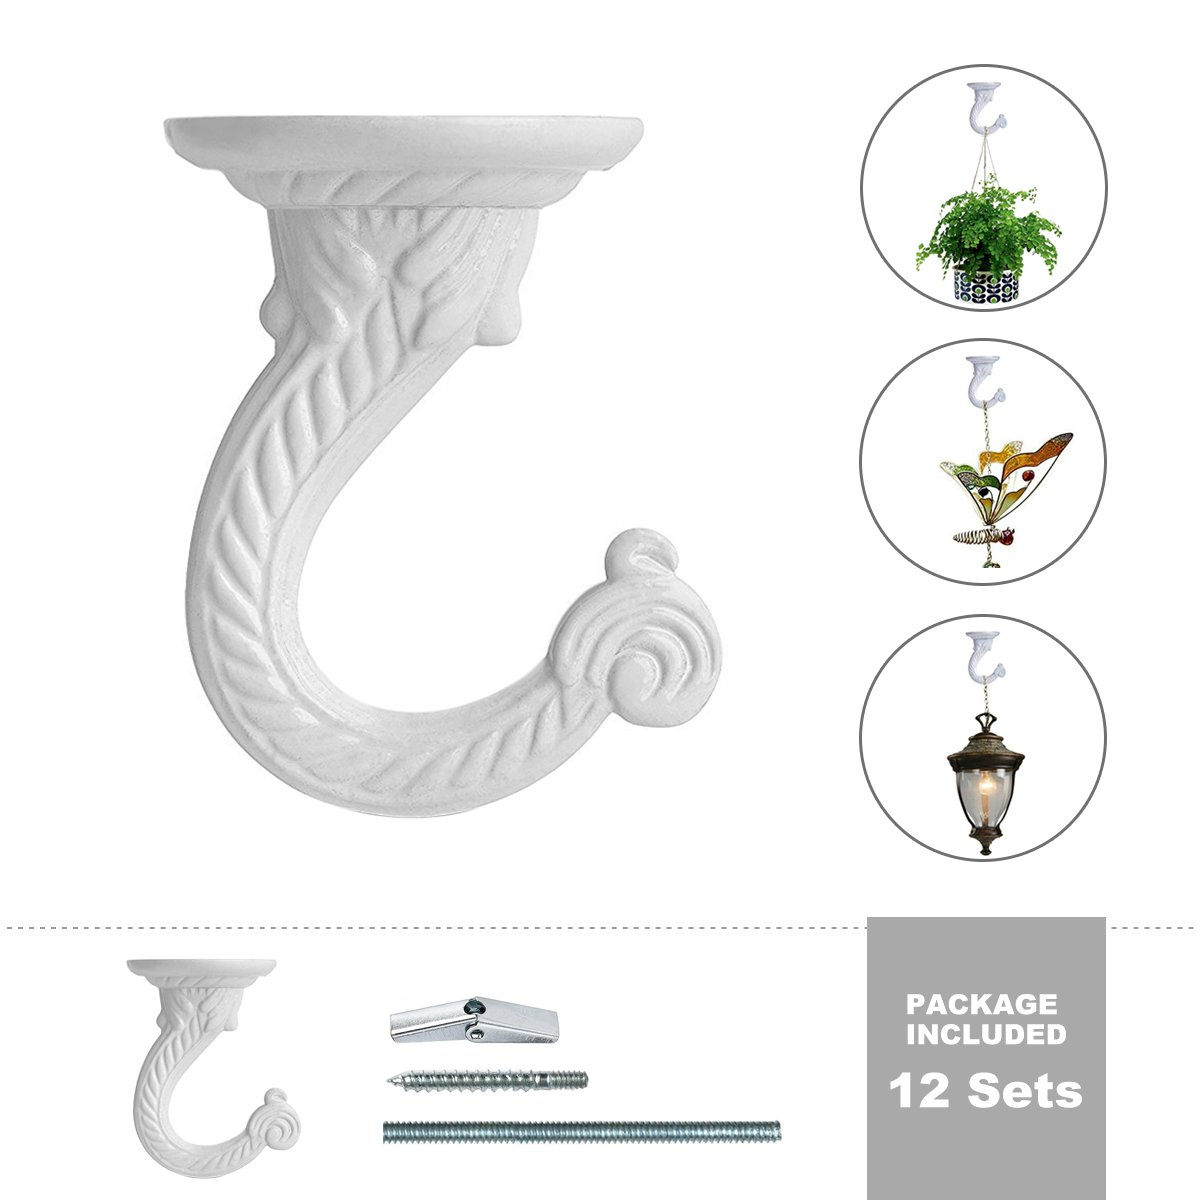 Plant Ceiling Hooks,UDGTEE Pack of 12 Complete Sets Heavy Duty Metal Ceiling Hooks,Swag Hooks with Steel Screws/Bolts and Toggle Wings,White Enamel Finish (HE-ZYO0026)